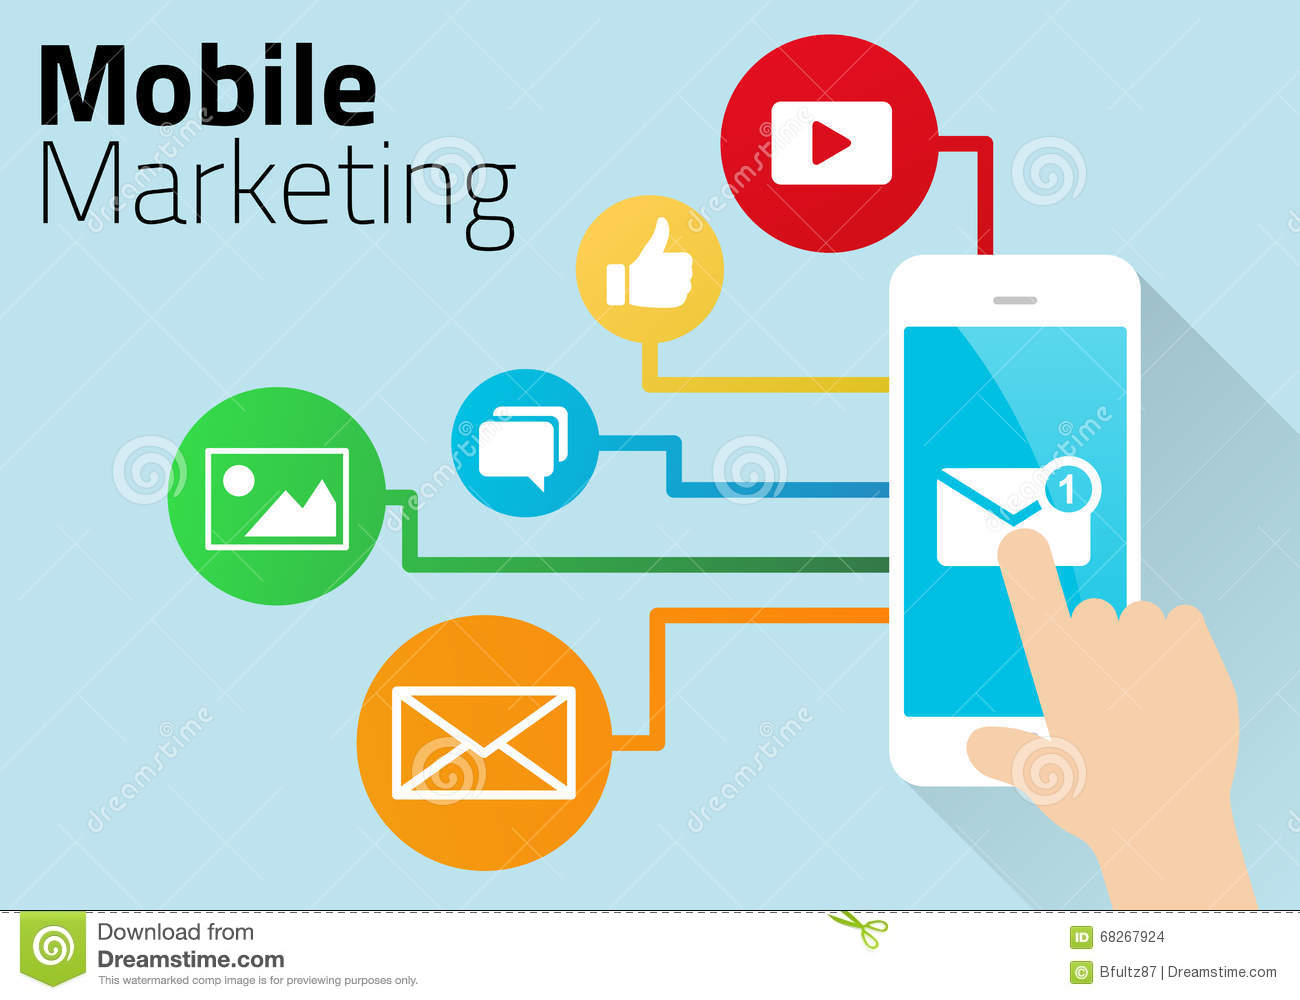 concept of mobile marketing diagrammed using smart phone and social media  icons with graphics on blue